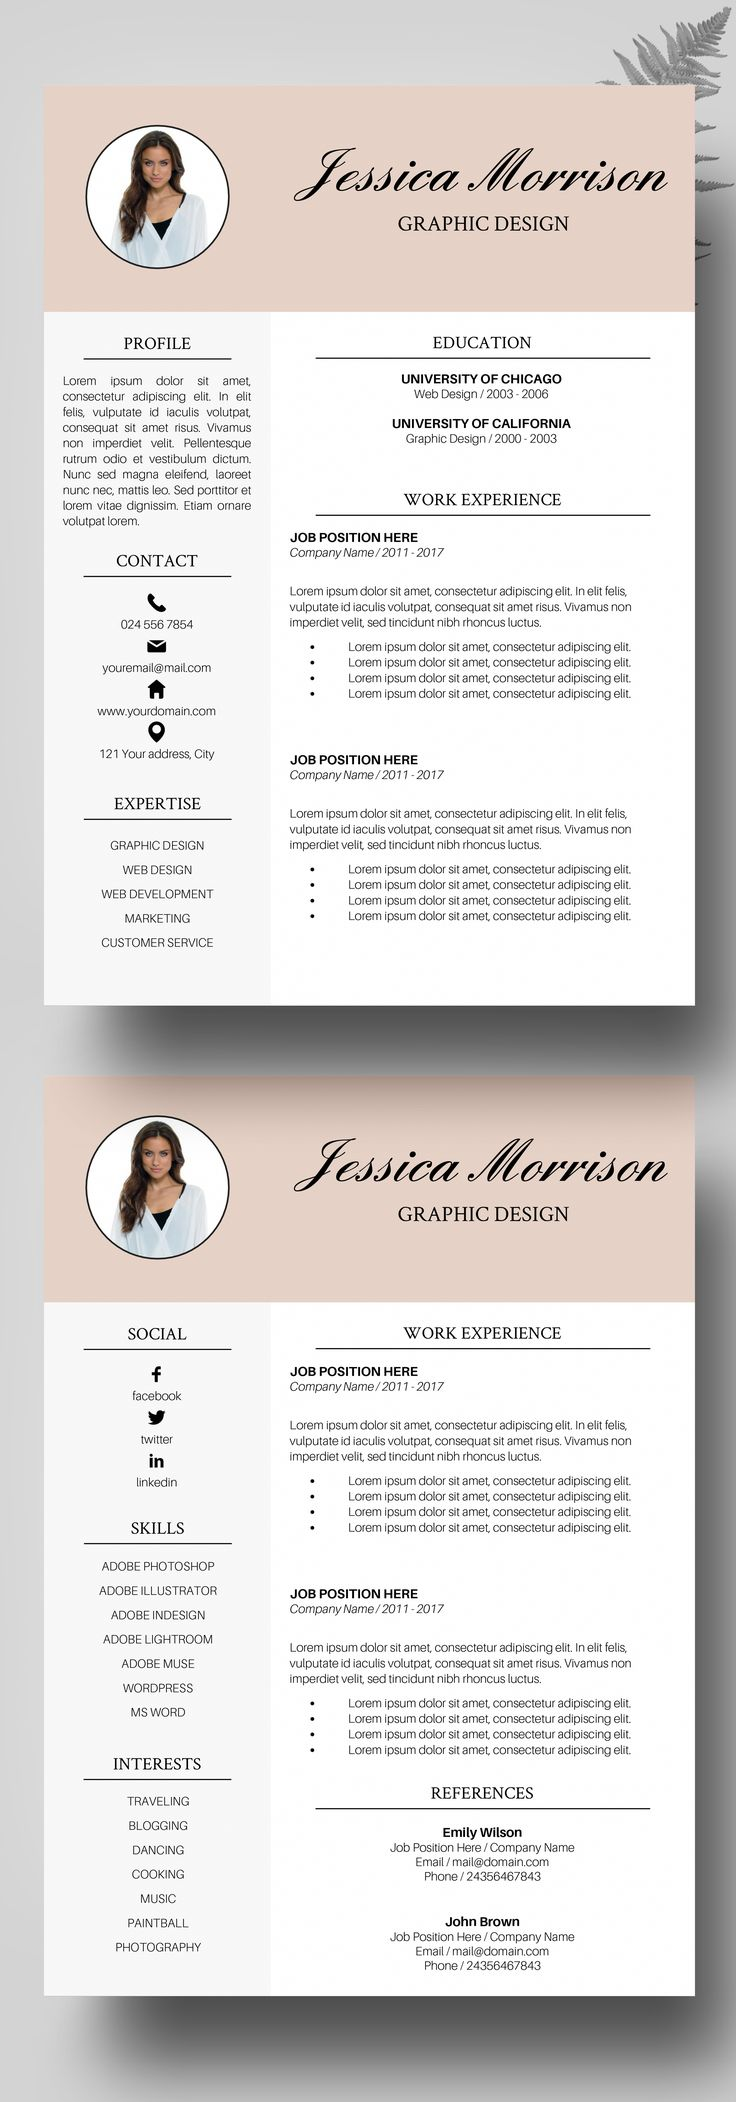 25 best creative cv template ideas on pinterest creative cv creative cv design and layout cv - Creative Resume Templates Free Word